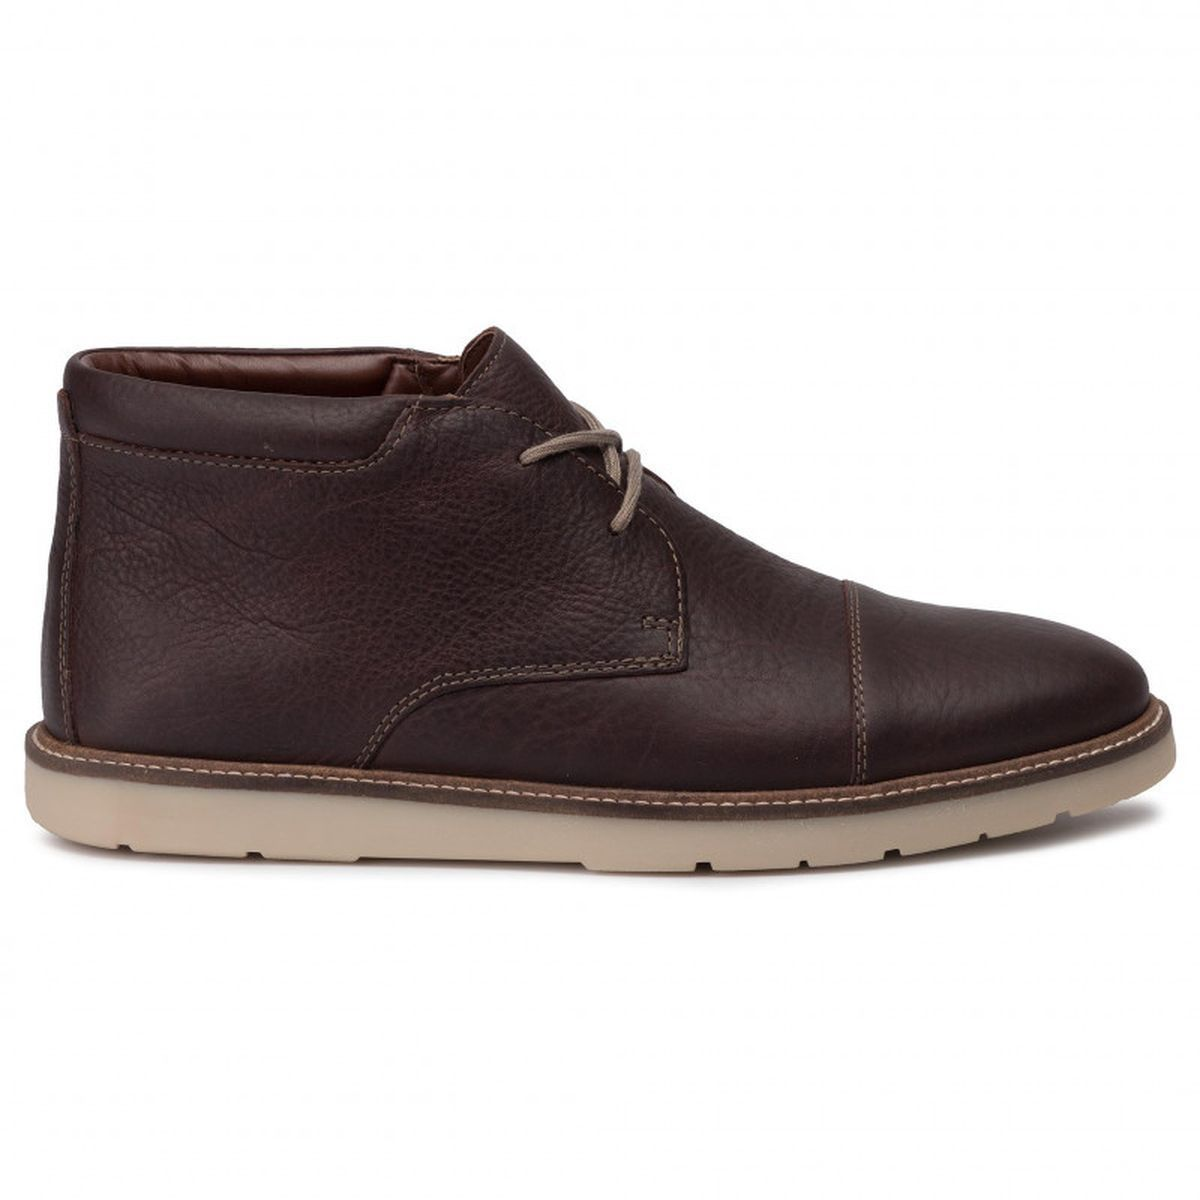 BOTTINES CATERPILLAR PETRA WP GRISES POUR FEMME GRANDIN TOP:MARRON/CUIR/TEXTILE/CAOUTCHOUC/Marron